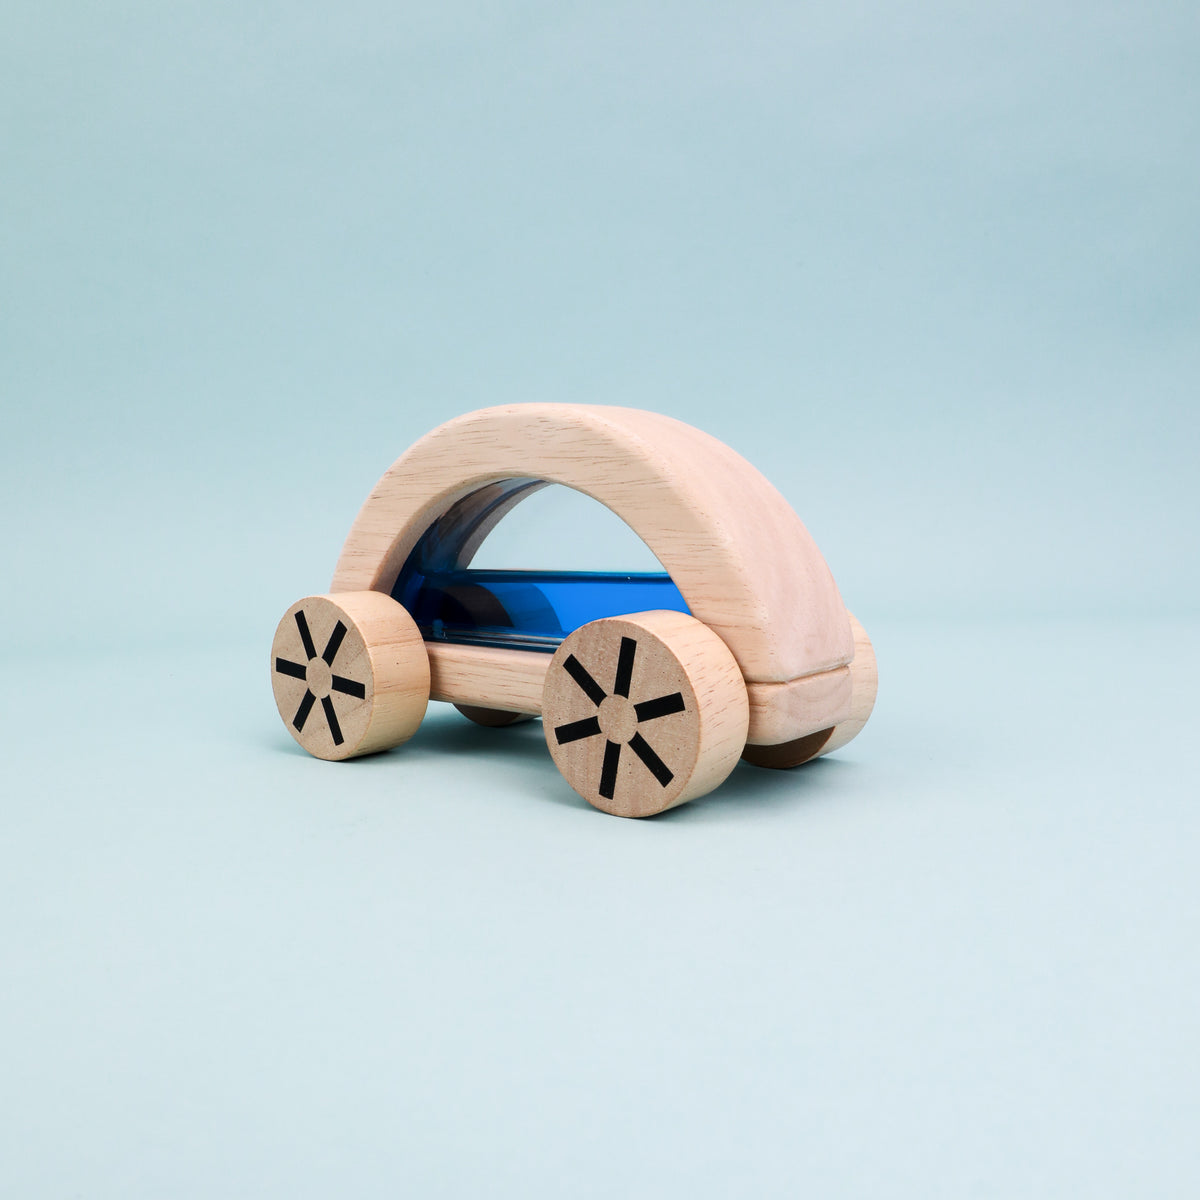 Wooden Water-Filled Vehicle